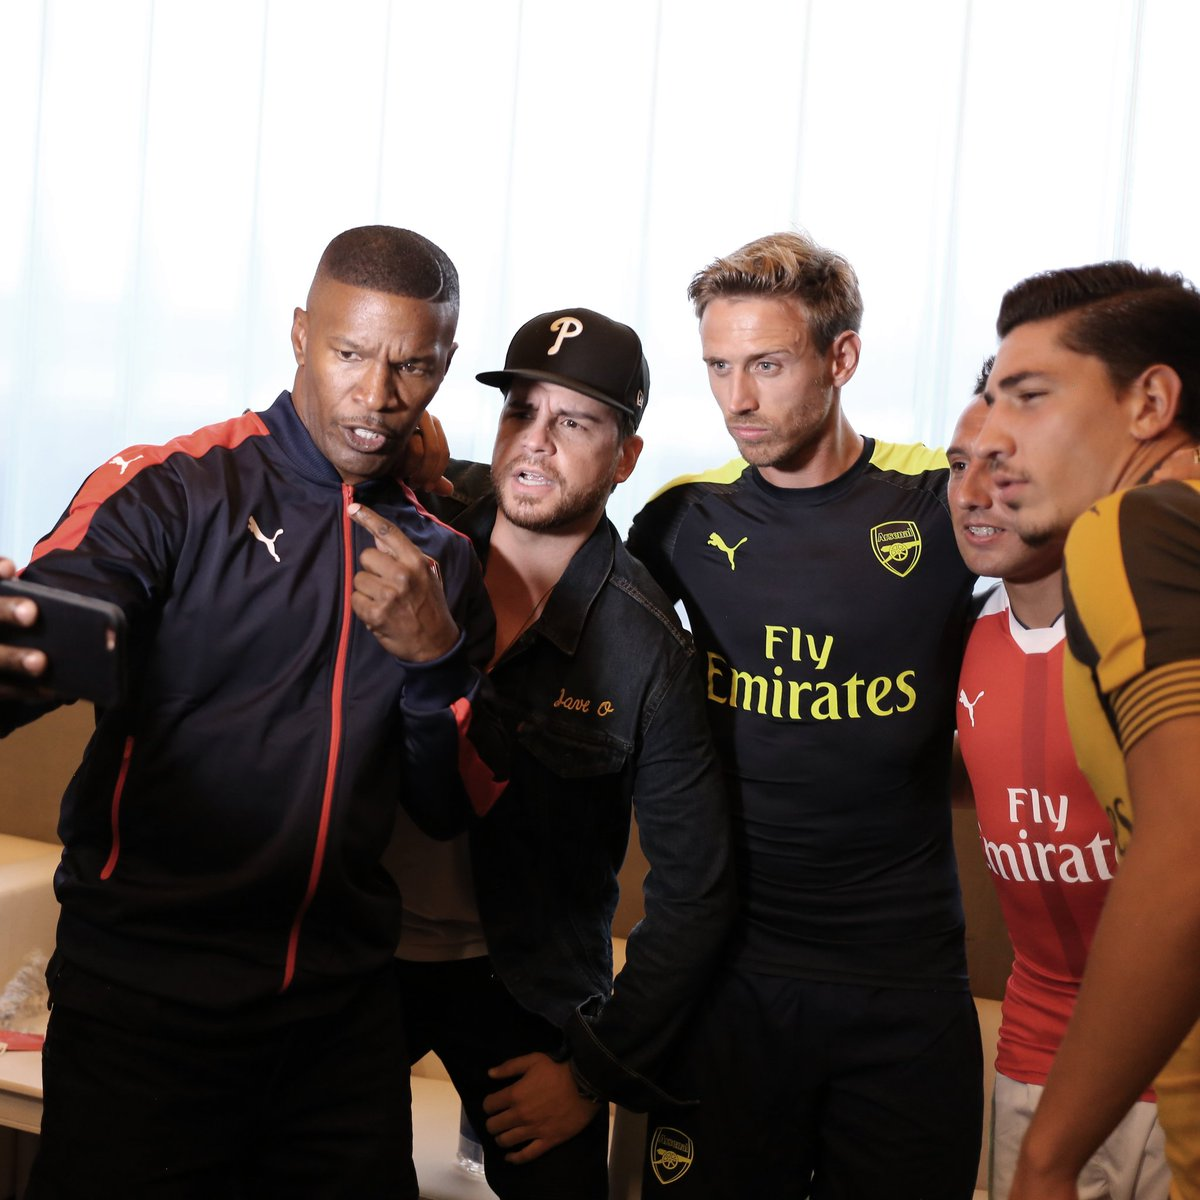 Great time tonight with @PUMAFootball @Arsenal Bring on the new season #ForeverArsenal https://t.co/QUt4exaBc5